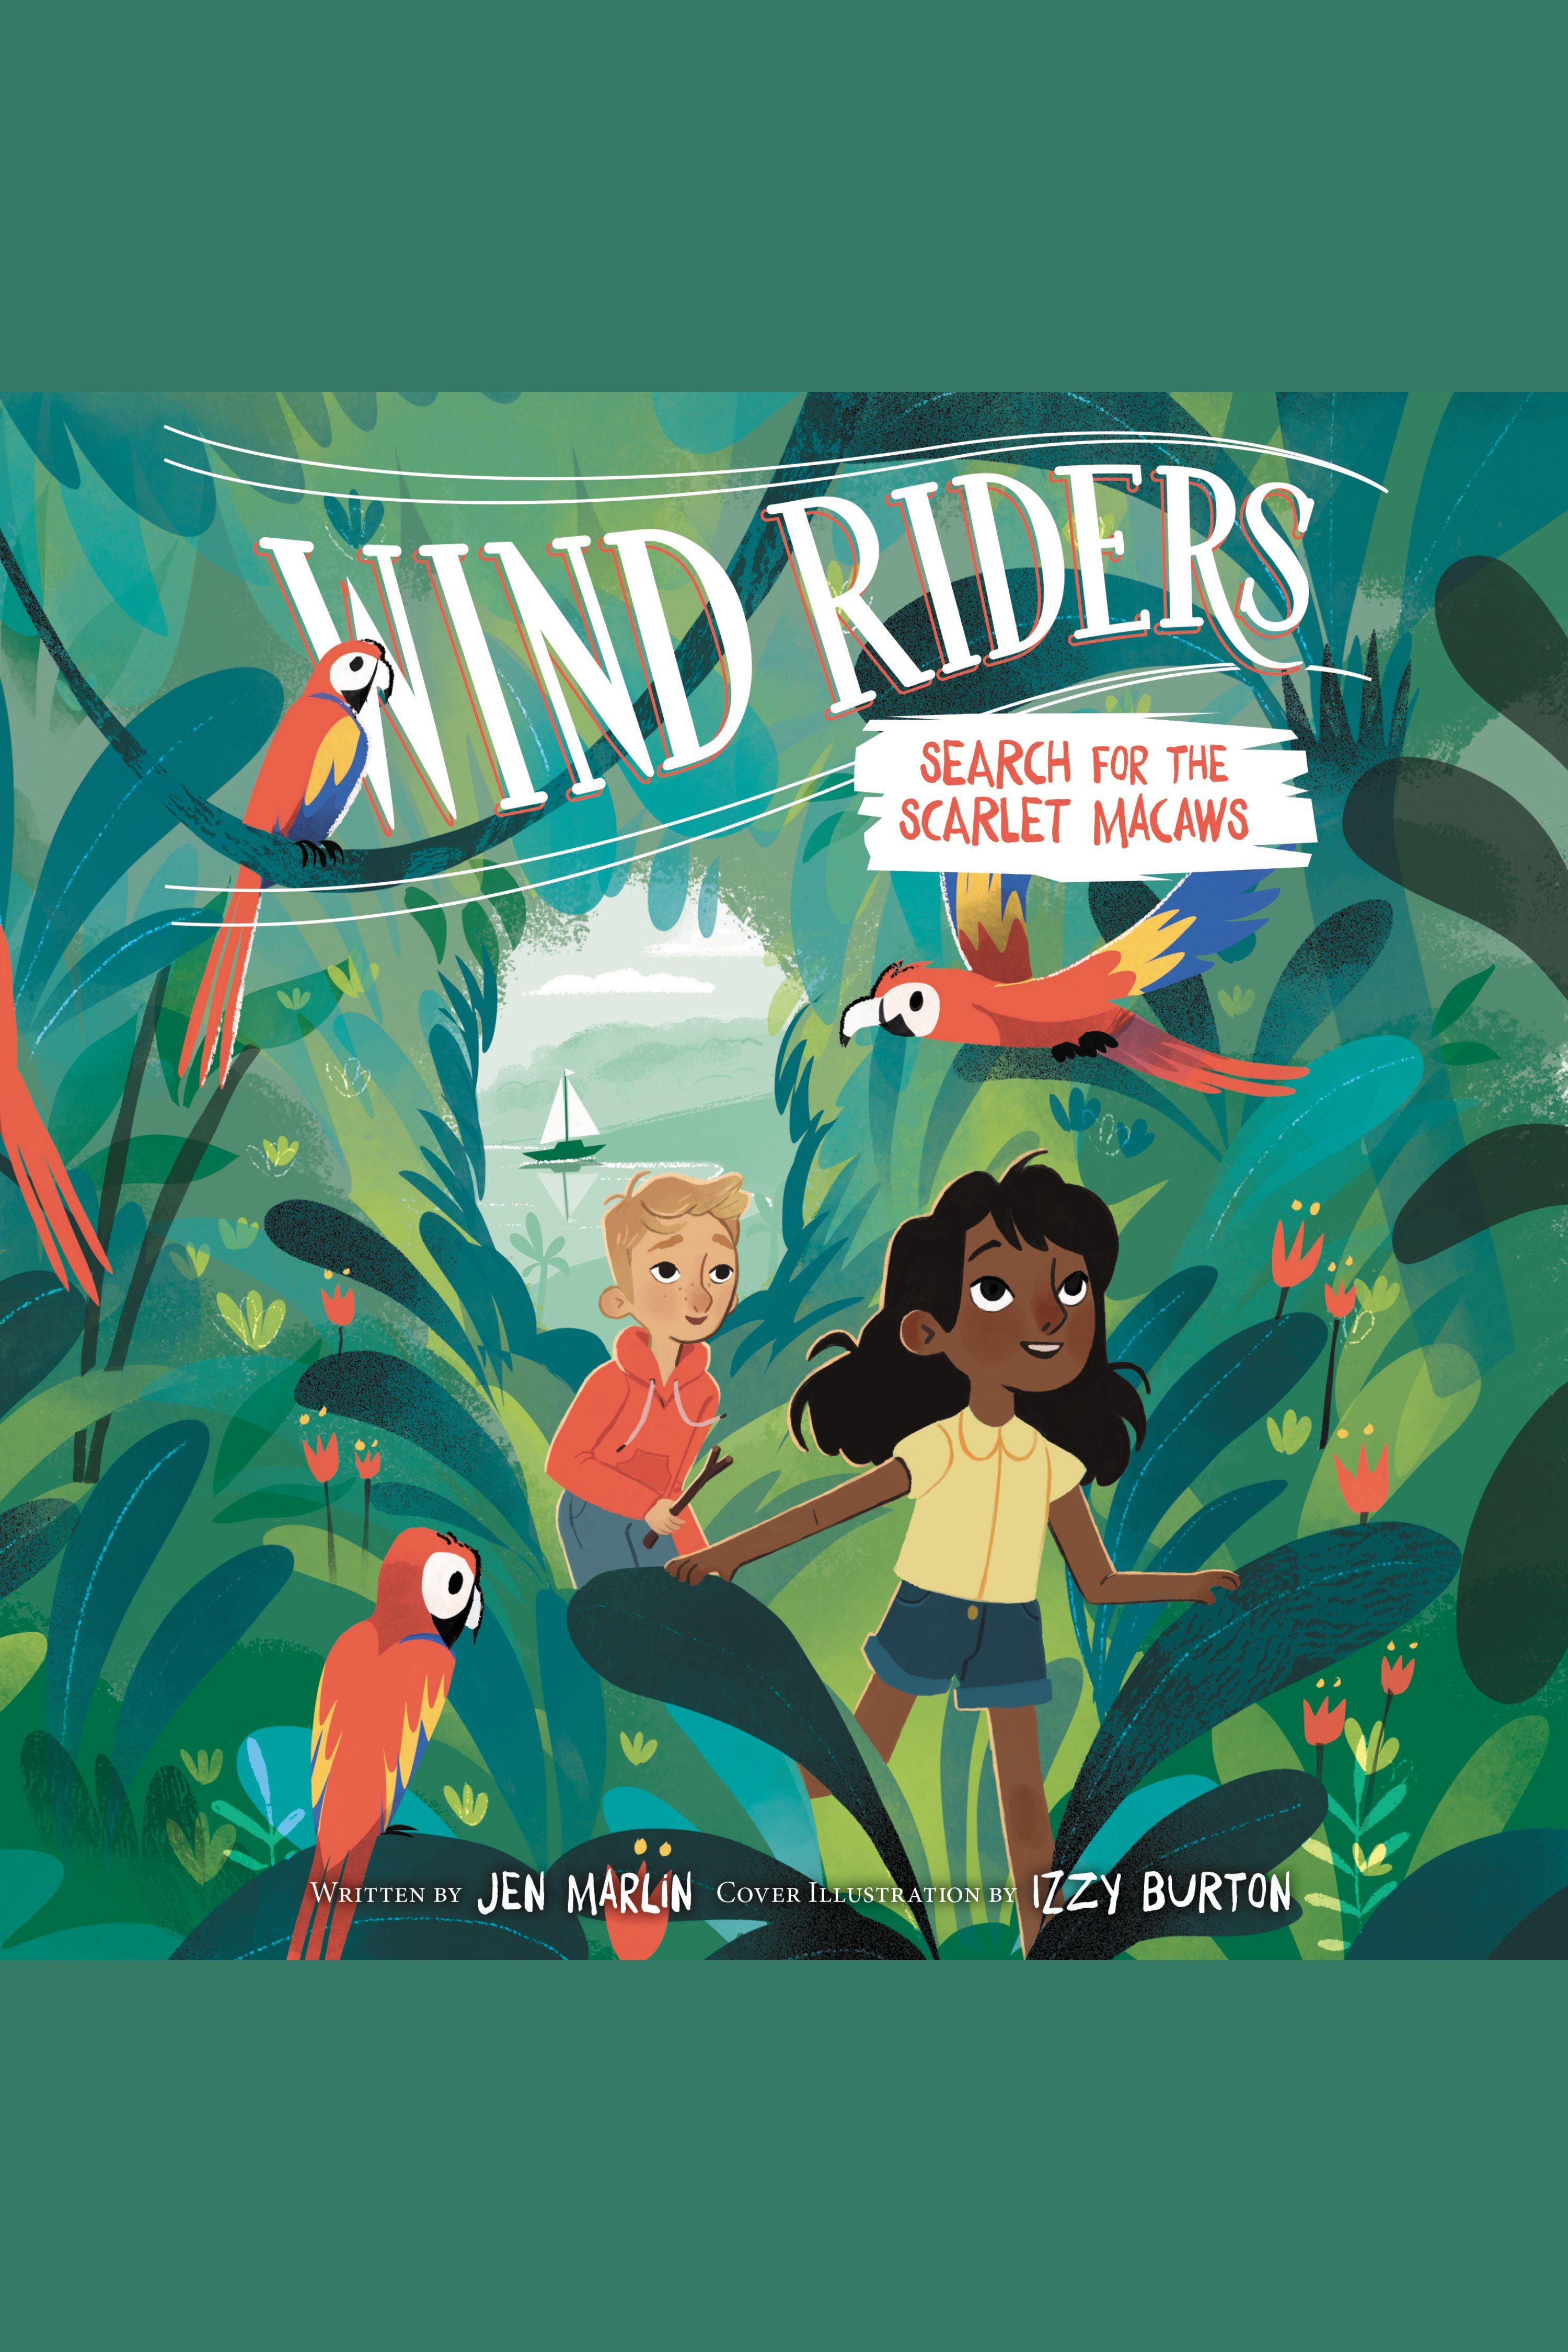 Wind Riders #2: Search for the Scarlet Macaws